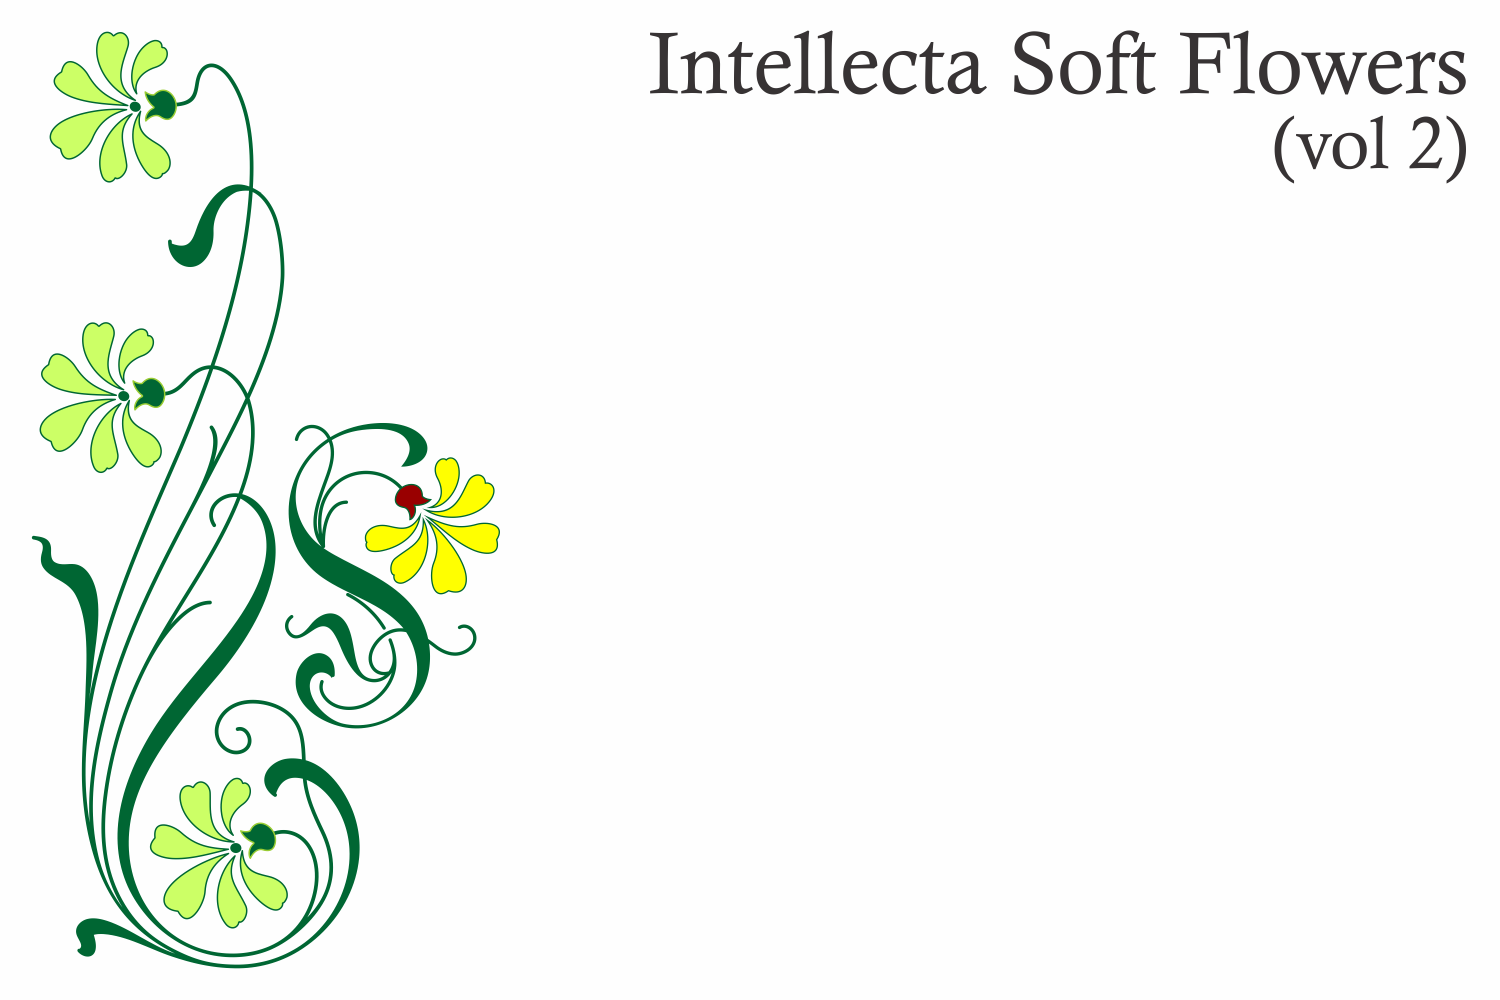 Intellecta Soft Flowers vol 2 example image 2